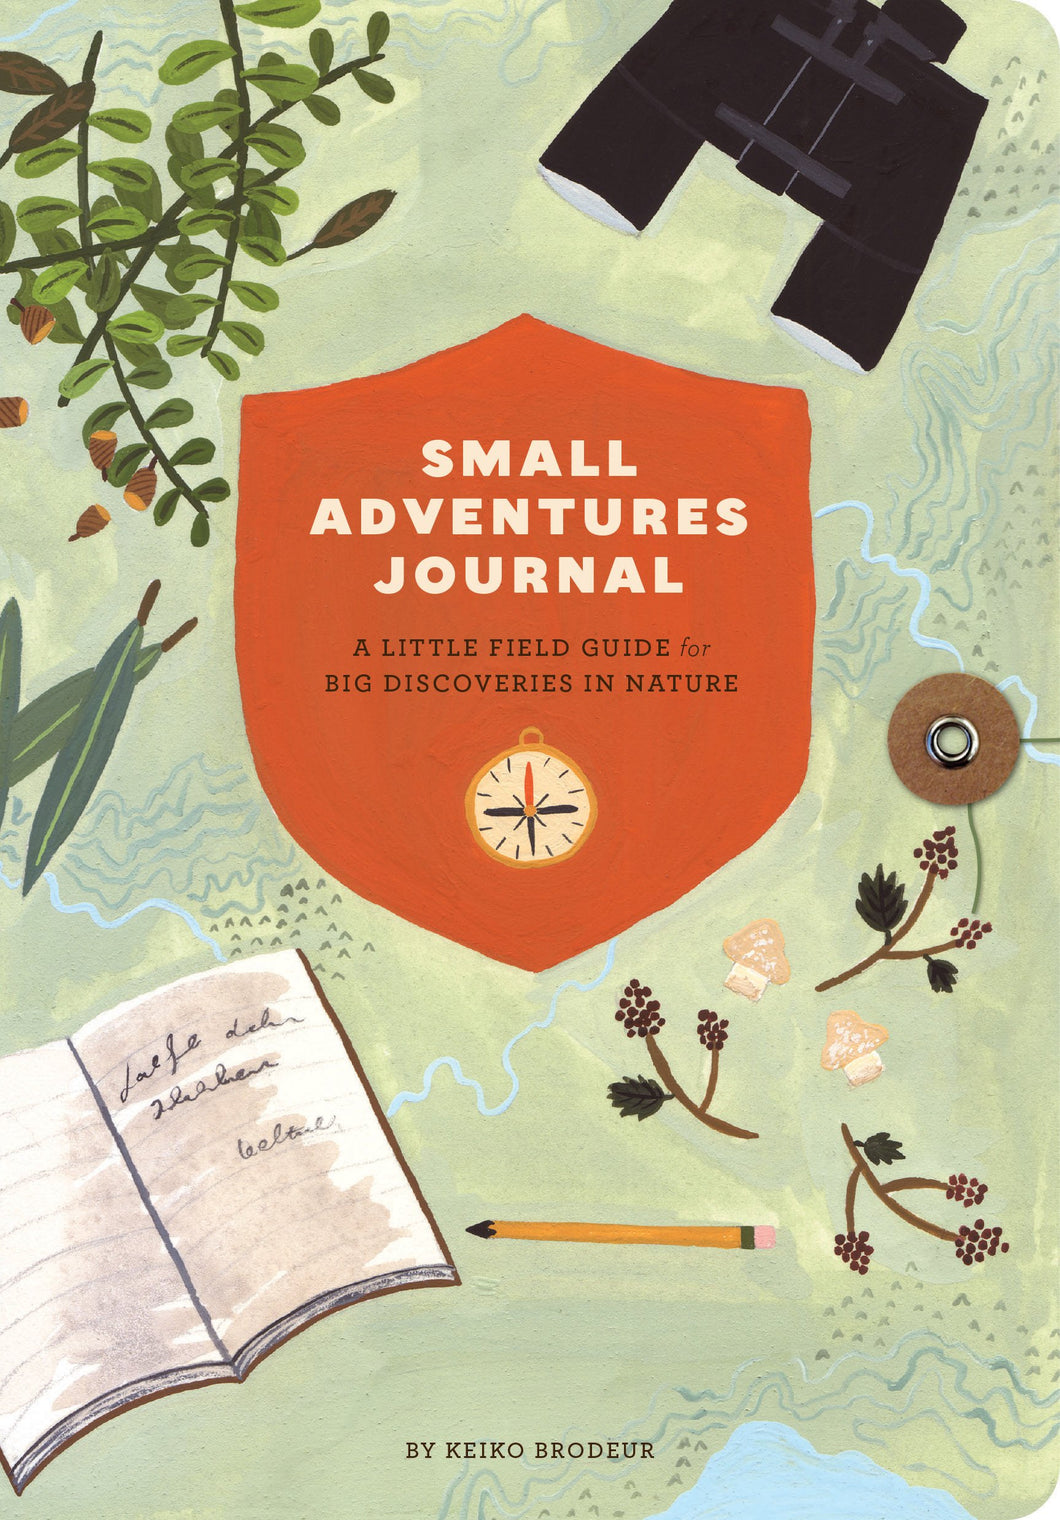 Small Adventures Journal: A Little Field Guide for Big Discoveries in Nature